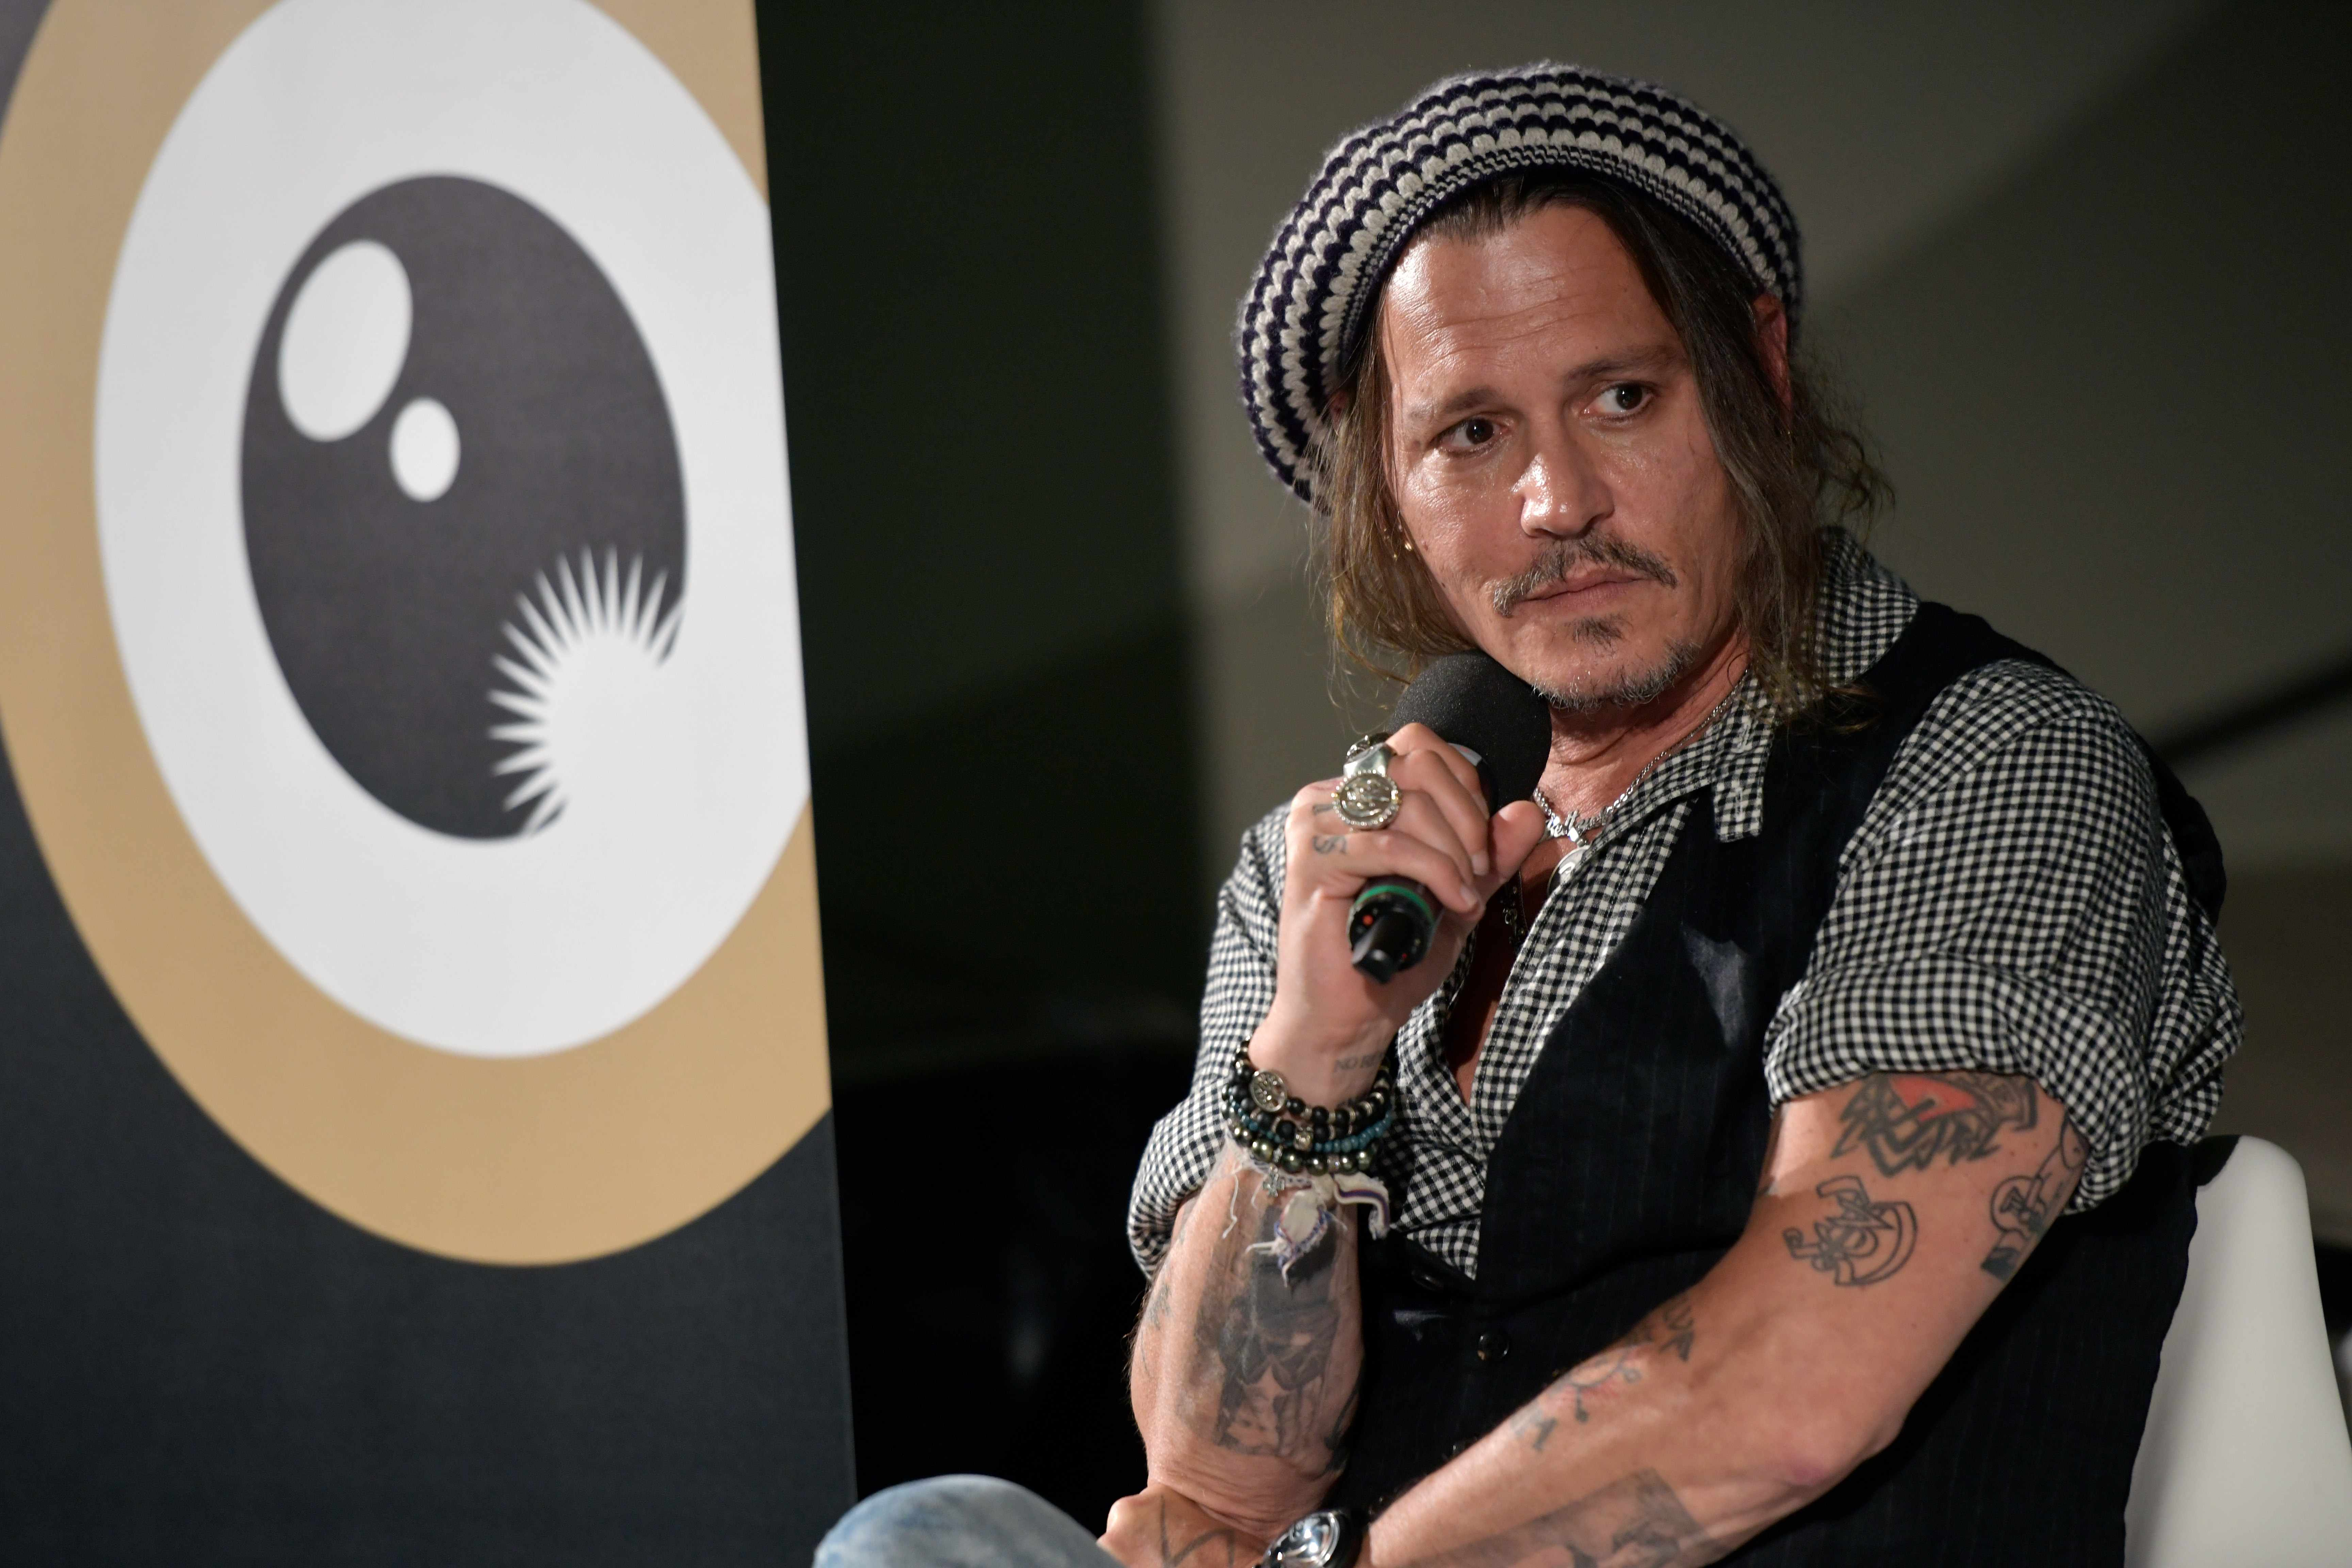 ZURICH, SWITZERLAND - OCTOBER 05: Johnny Depp speaks at the 'A conversation with...' event during the 14th Zurich Film Festival on October 05, 2018 in Zurich, Switzerland. (Photo by Thomas Lohnes/Getty Images)